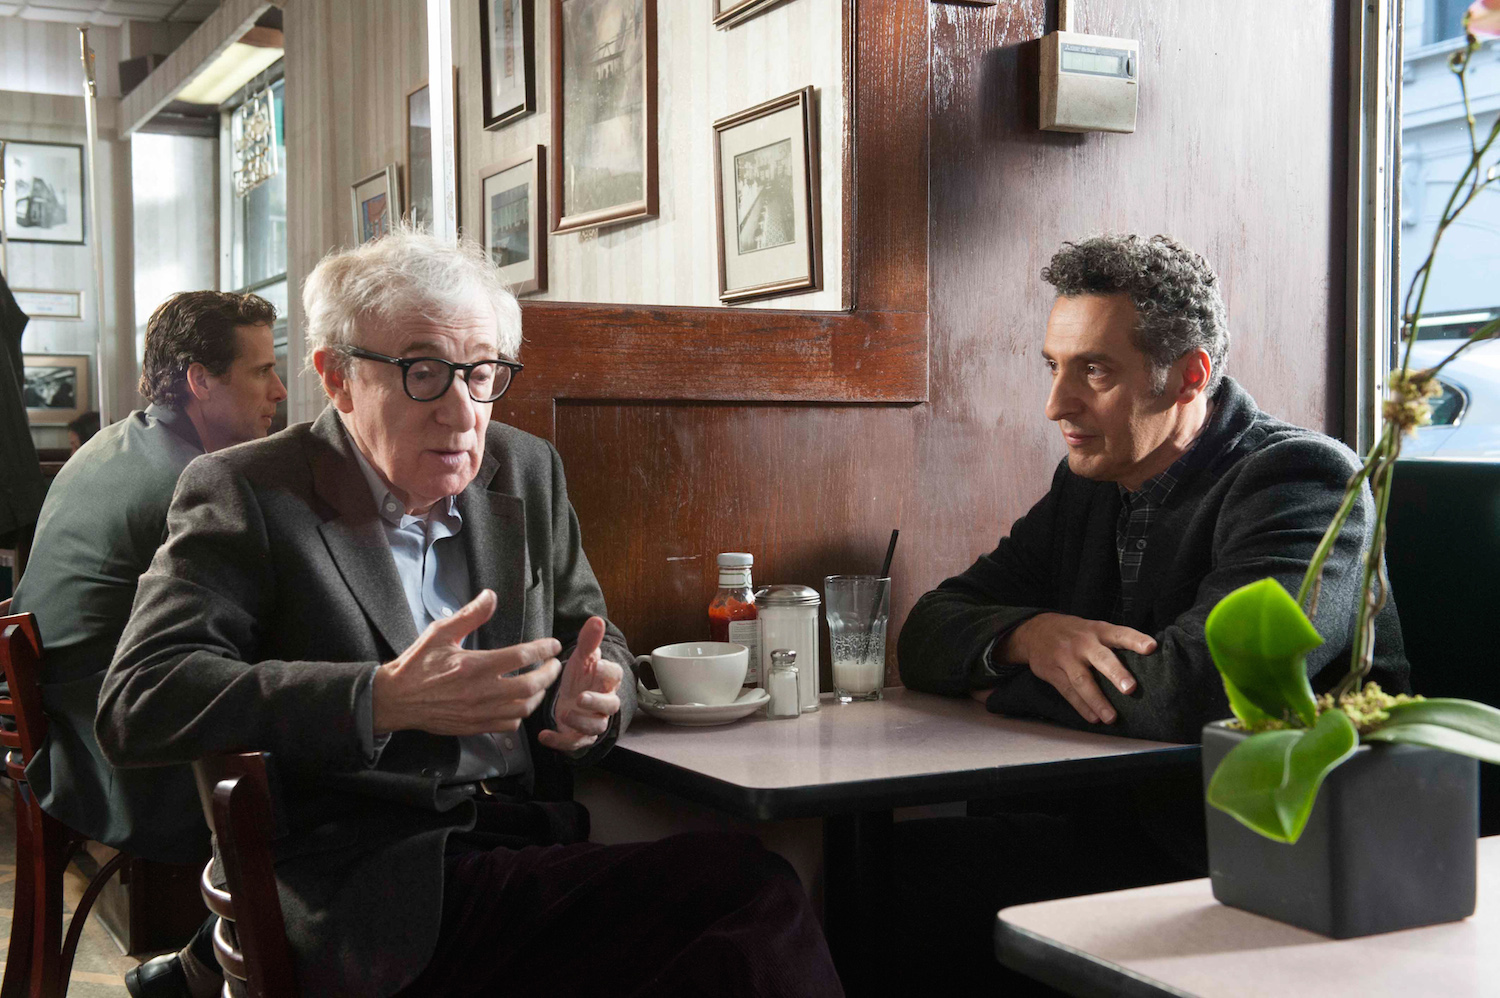 This Week In Movies: 'Transcendence,' 'Fading Gigolo,' 'Heaven Is For Real'